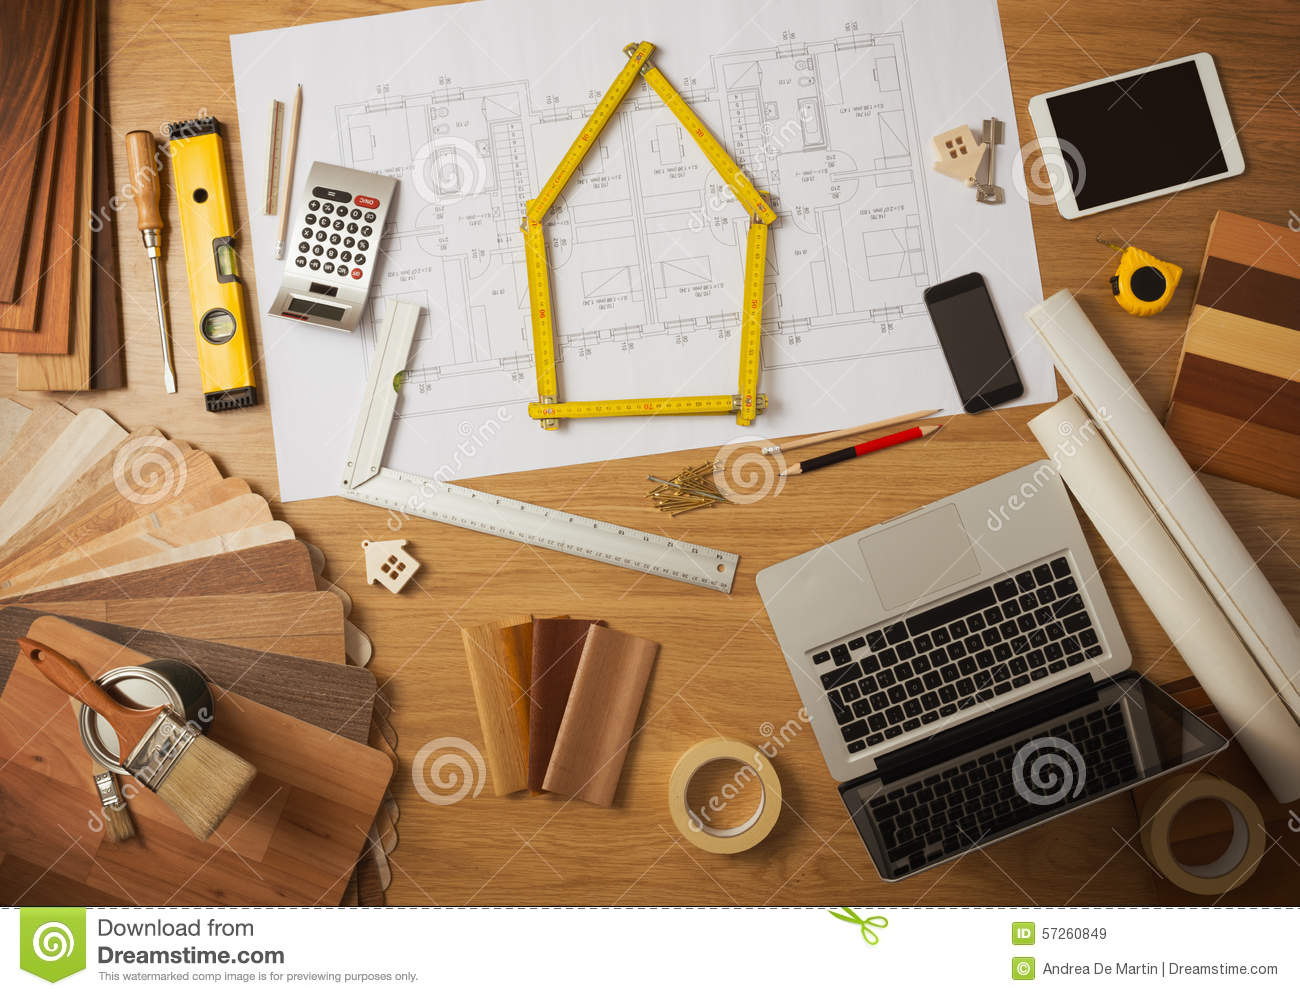 Architect And Interior Designer Work Table Stock Image   Image Of  Reconstruction, Occupation: 57260849